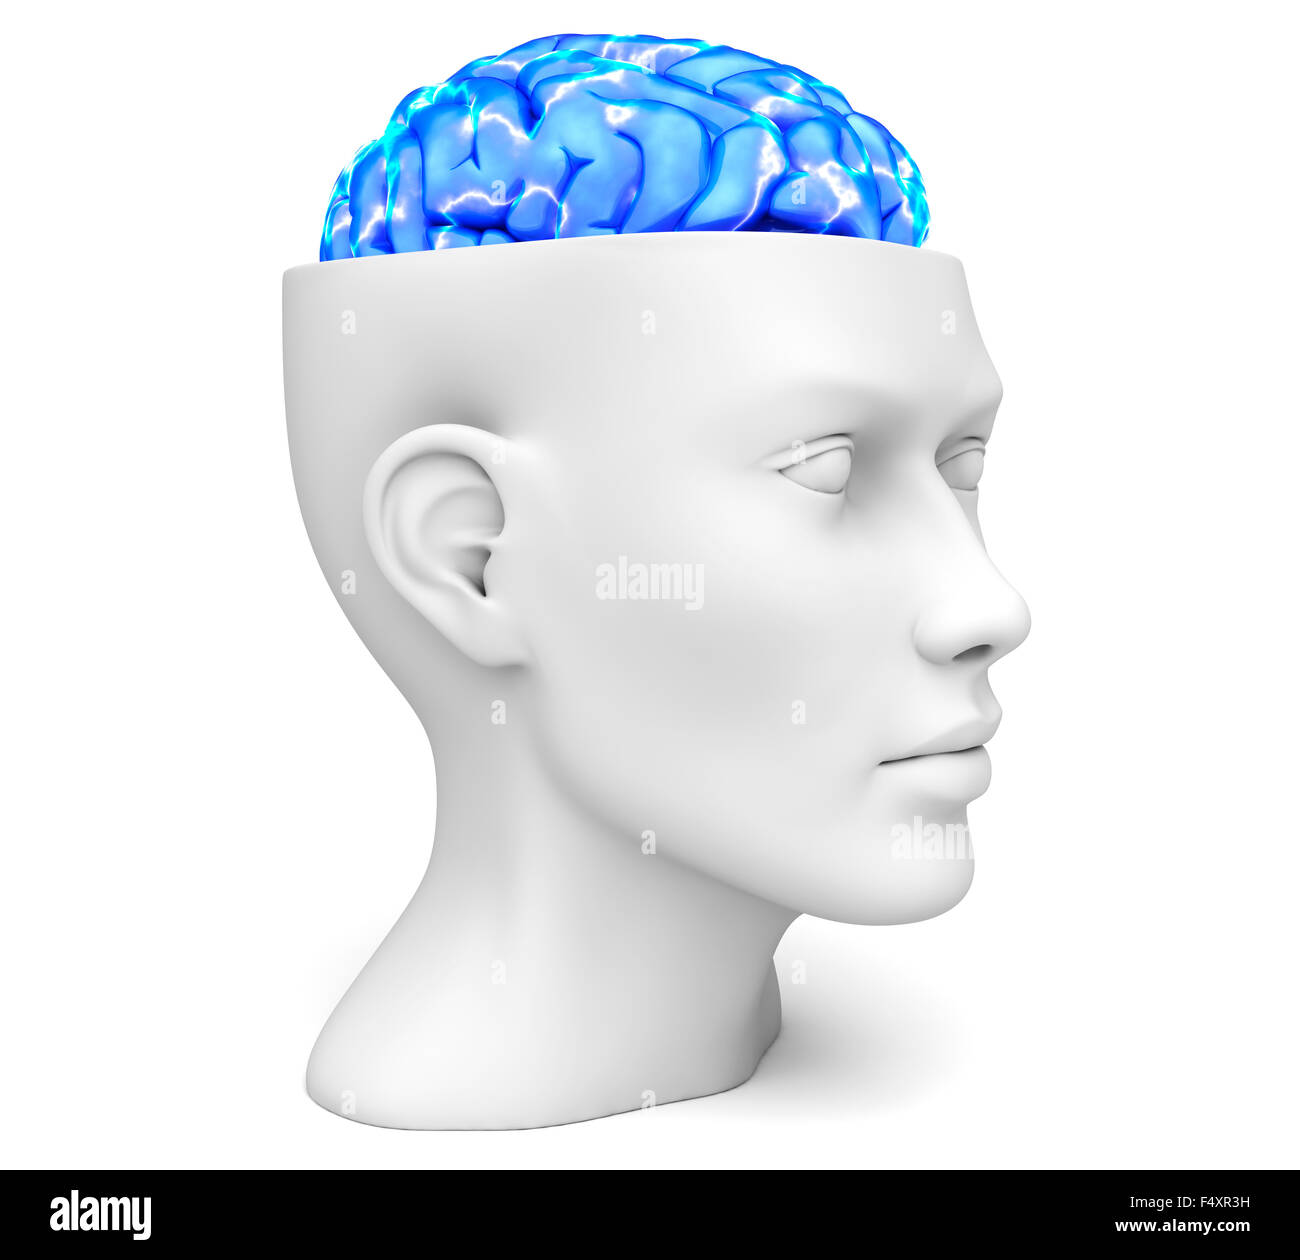 Head with active brain - Stock Image